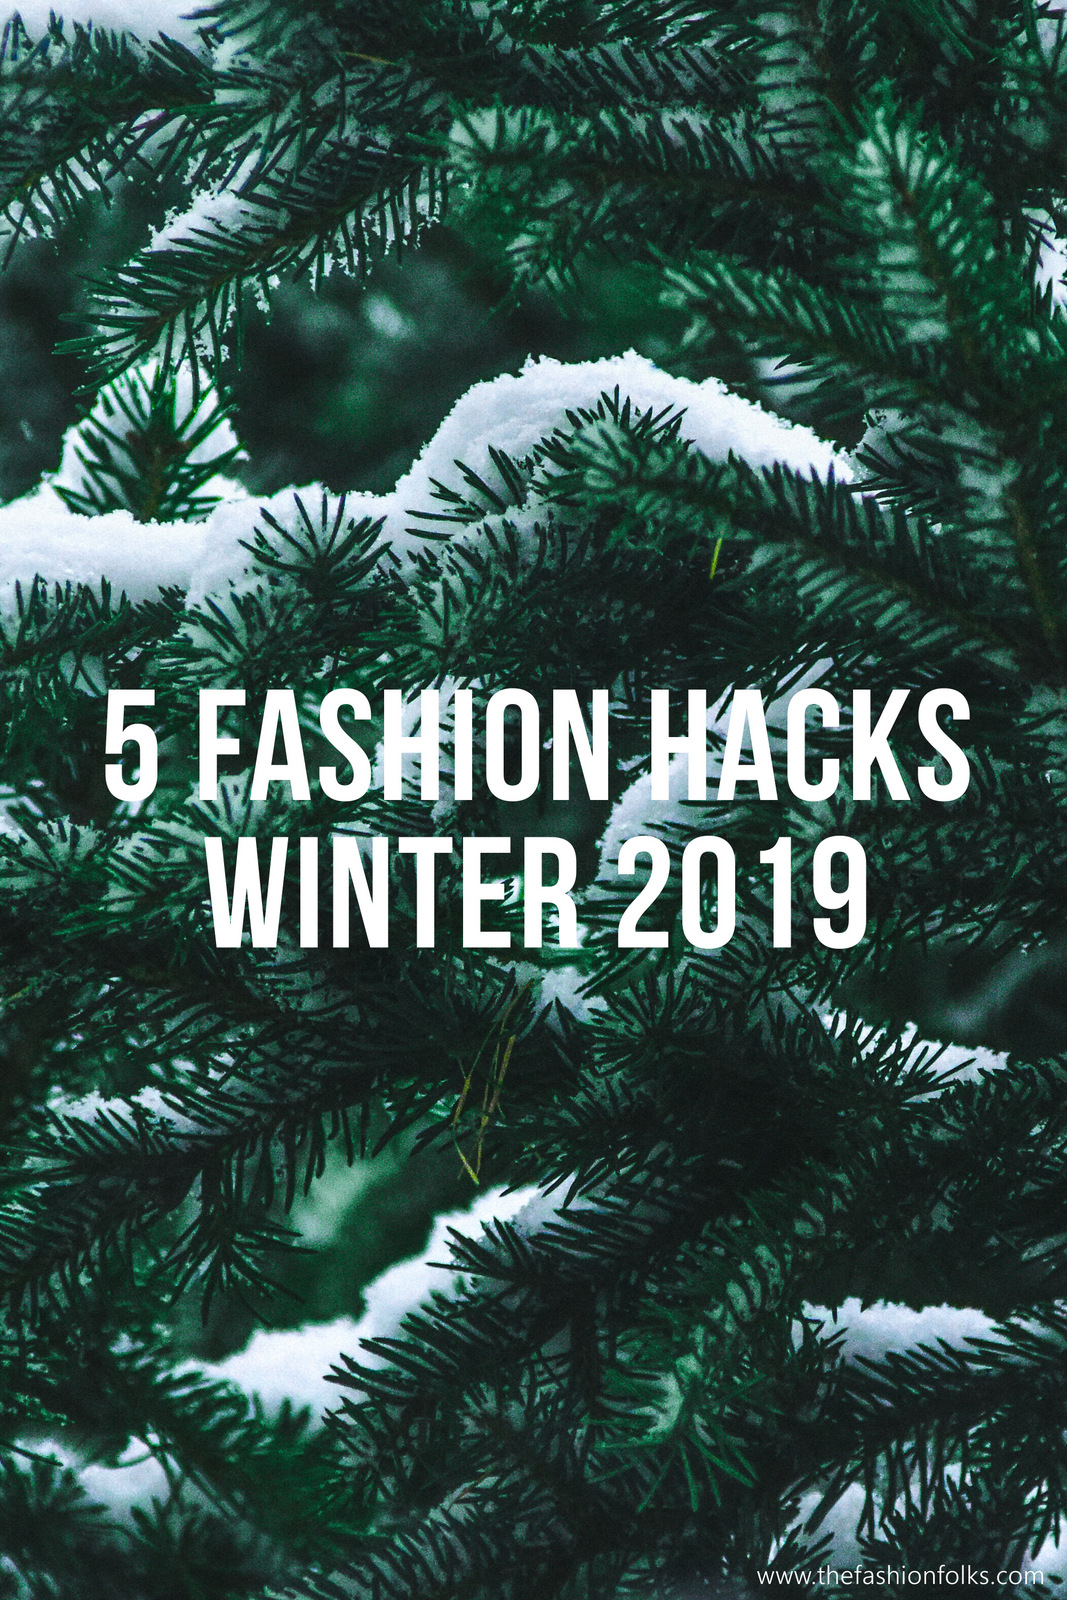 Fashion Hacks Winter 2019 Styling Tips outfit tips street style inspiration fashion trends 2019